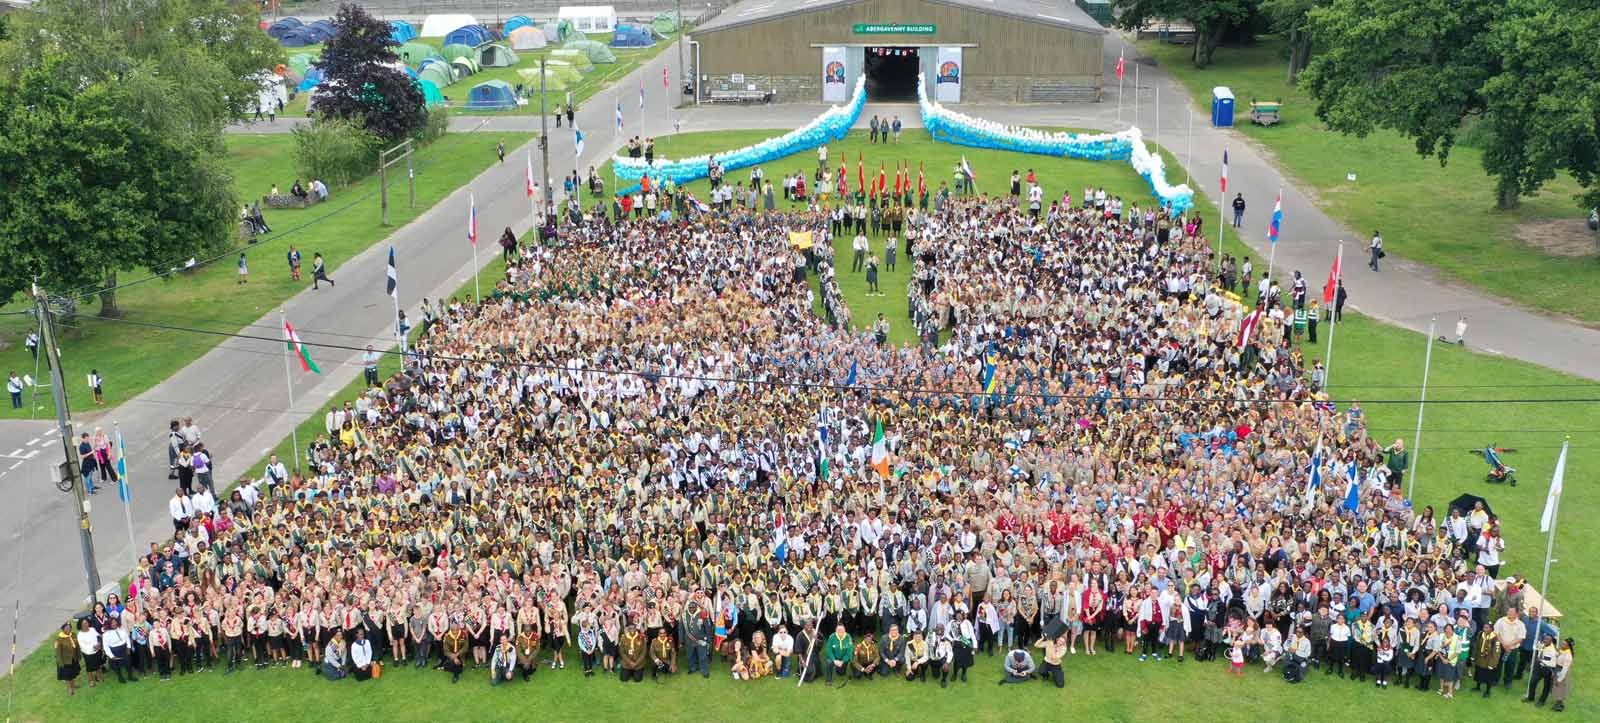 Camporee group photo